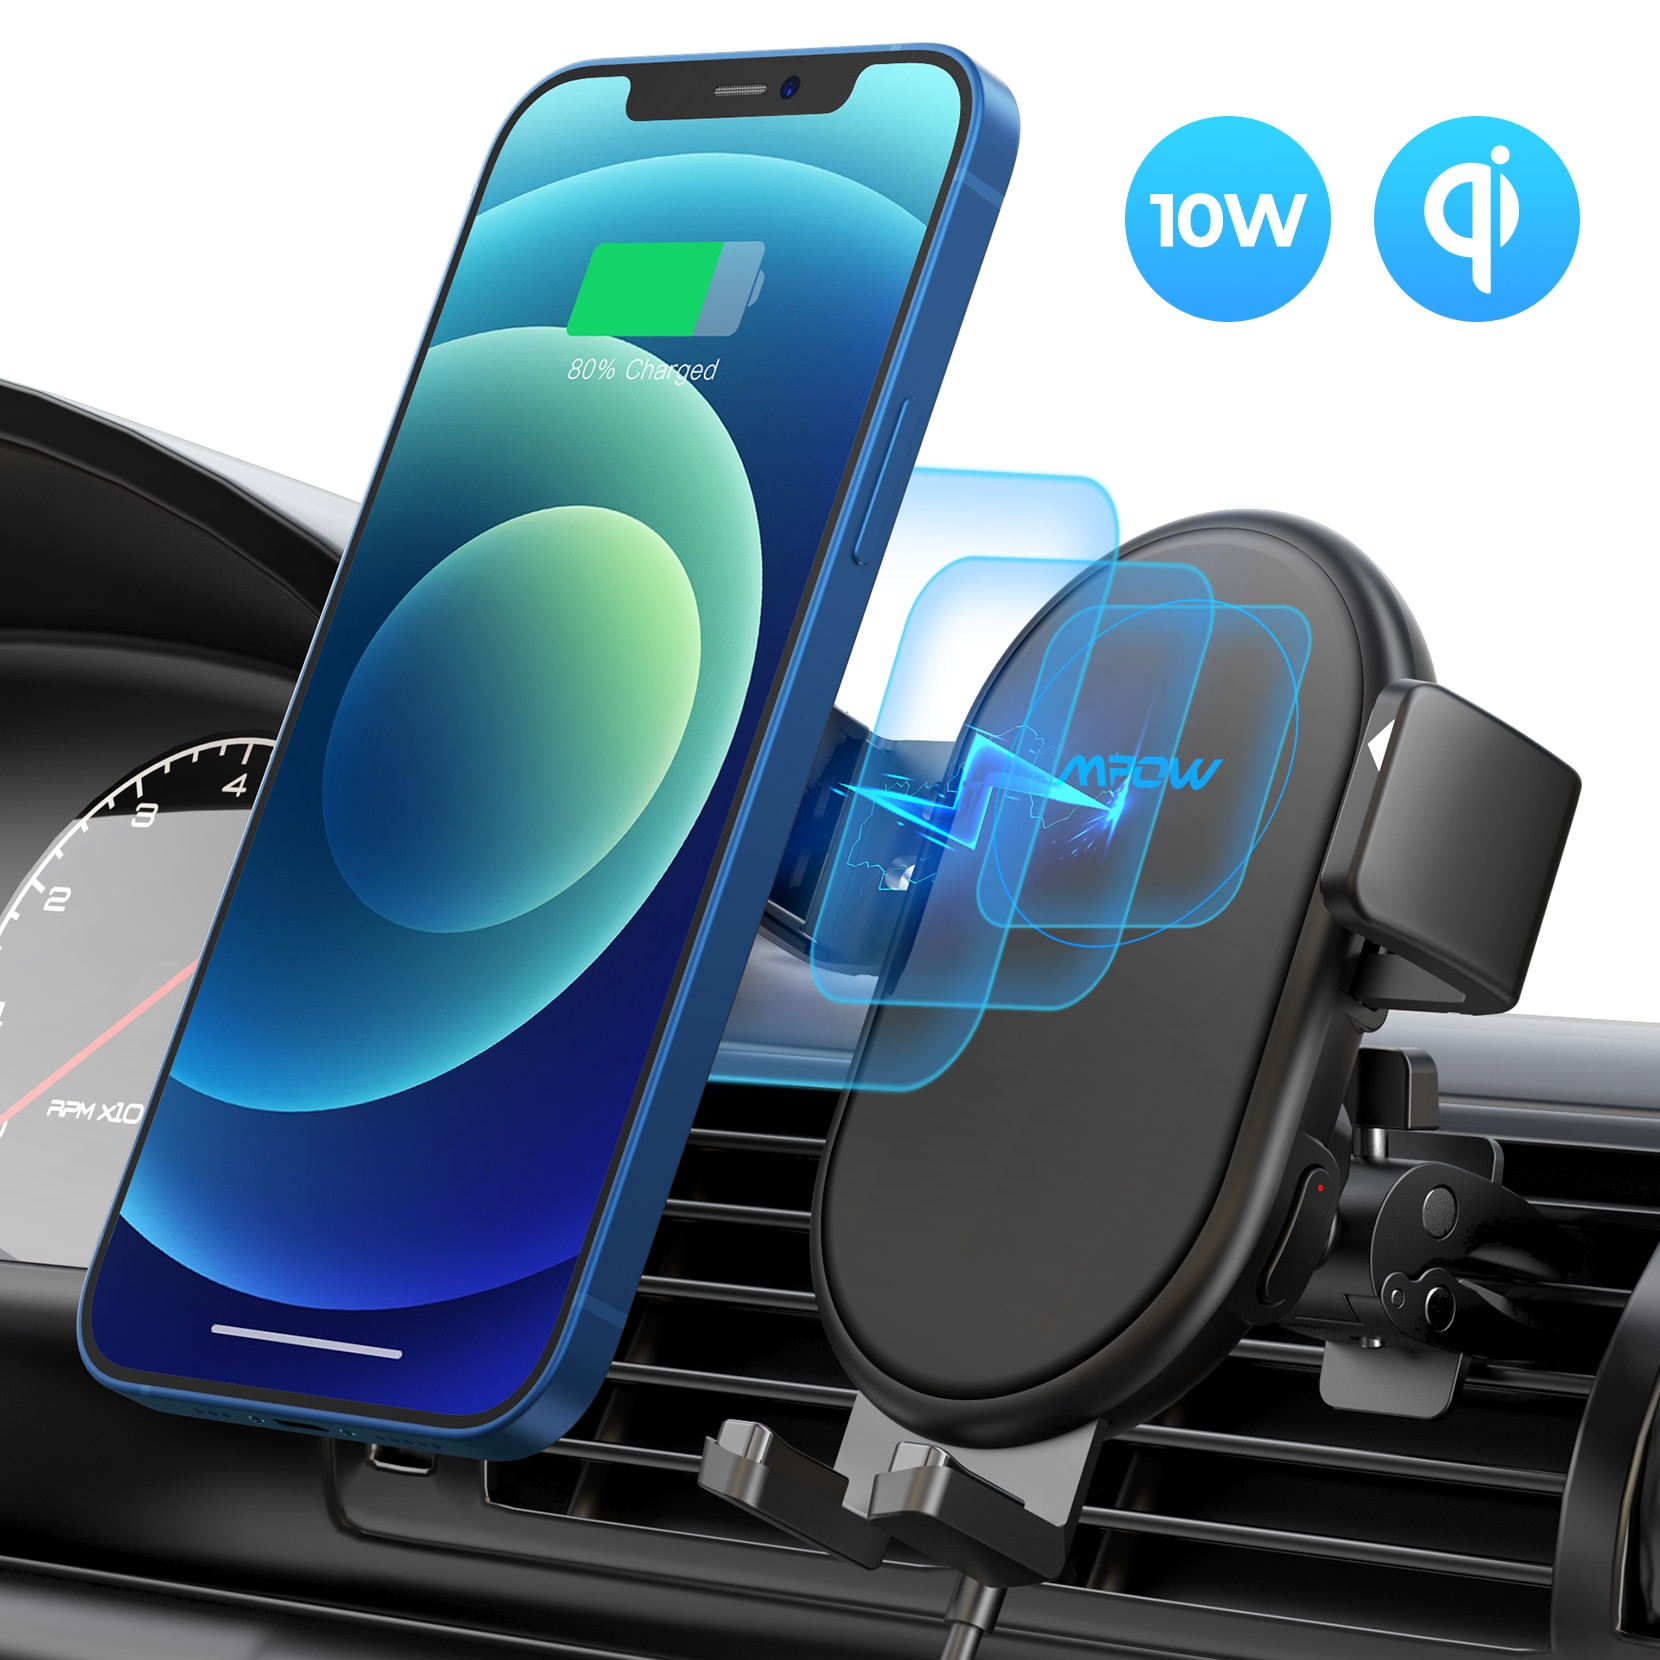 H67cee62b2e4a497bad1c59a2cbaa9544v - Mpow Wireless Car Charger Mount 10W Auto-clamping Qi Fast Charging Car Mount with Power Storage Car Phone Holder for iPhone 12